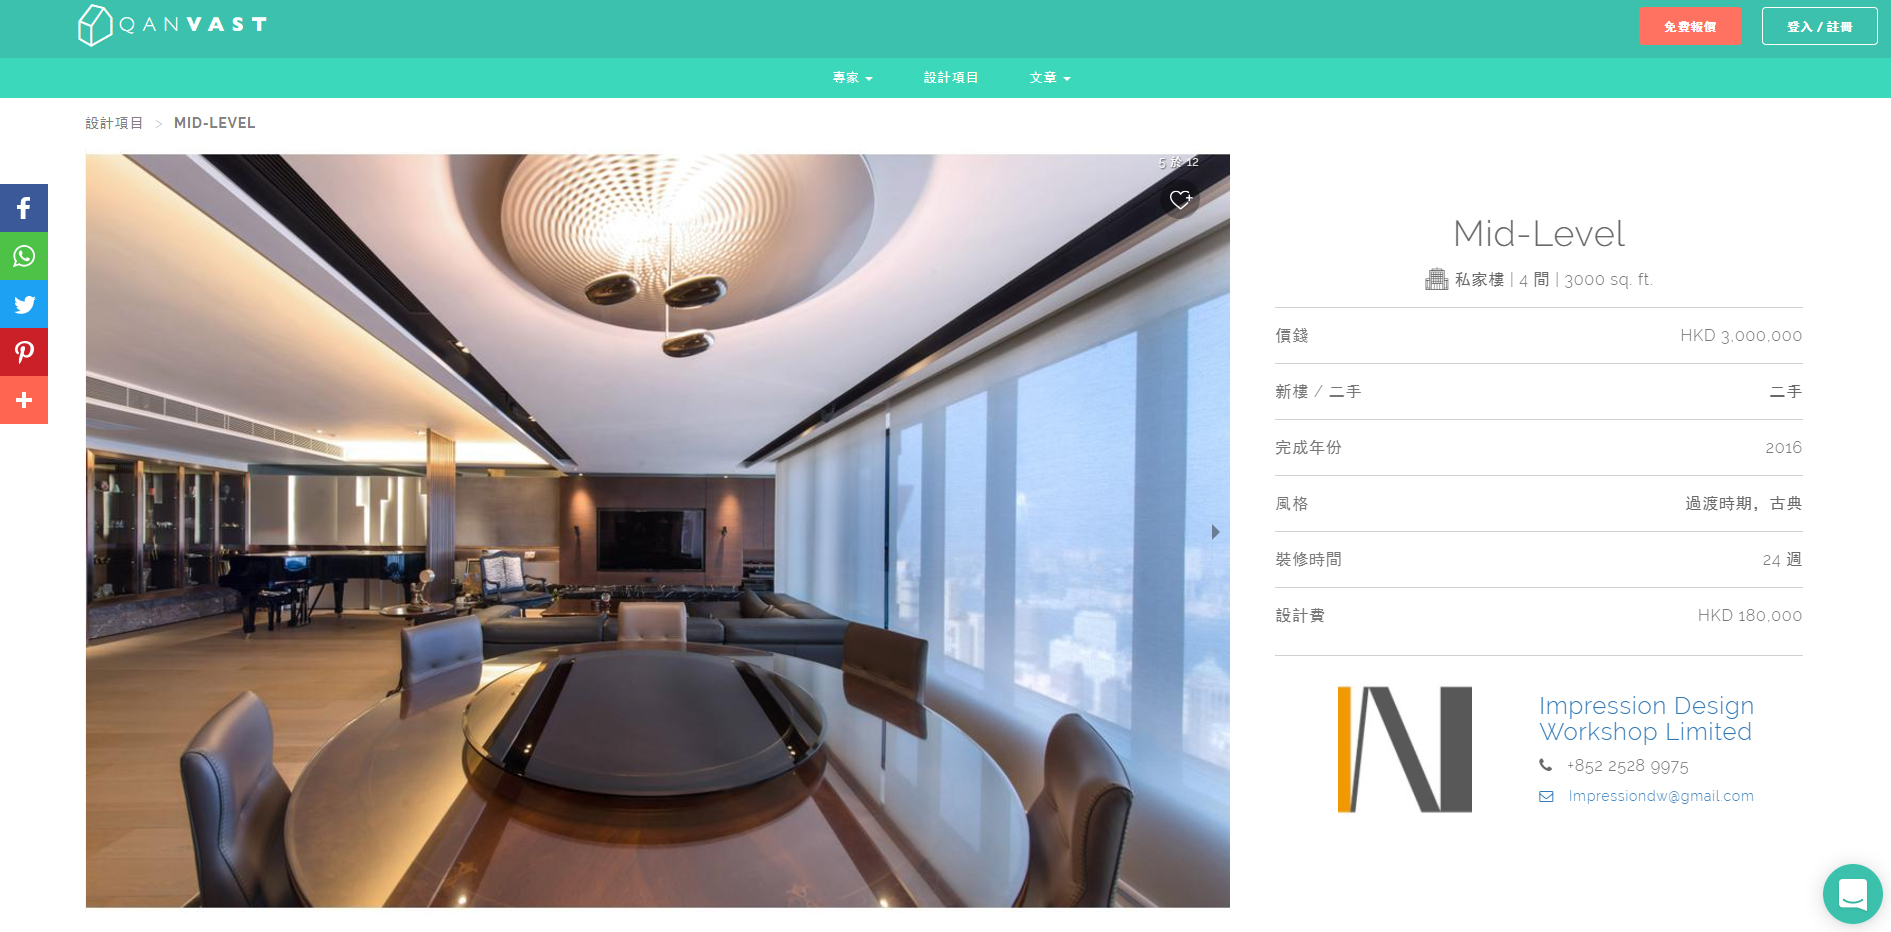 Qanvast Media - Mid Level https://qanvast.com/hk/interior-design-hongkong/hao-shi-nei-she-ji-you-xian-gong-si-mid-level-6422